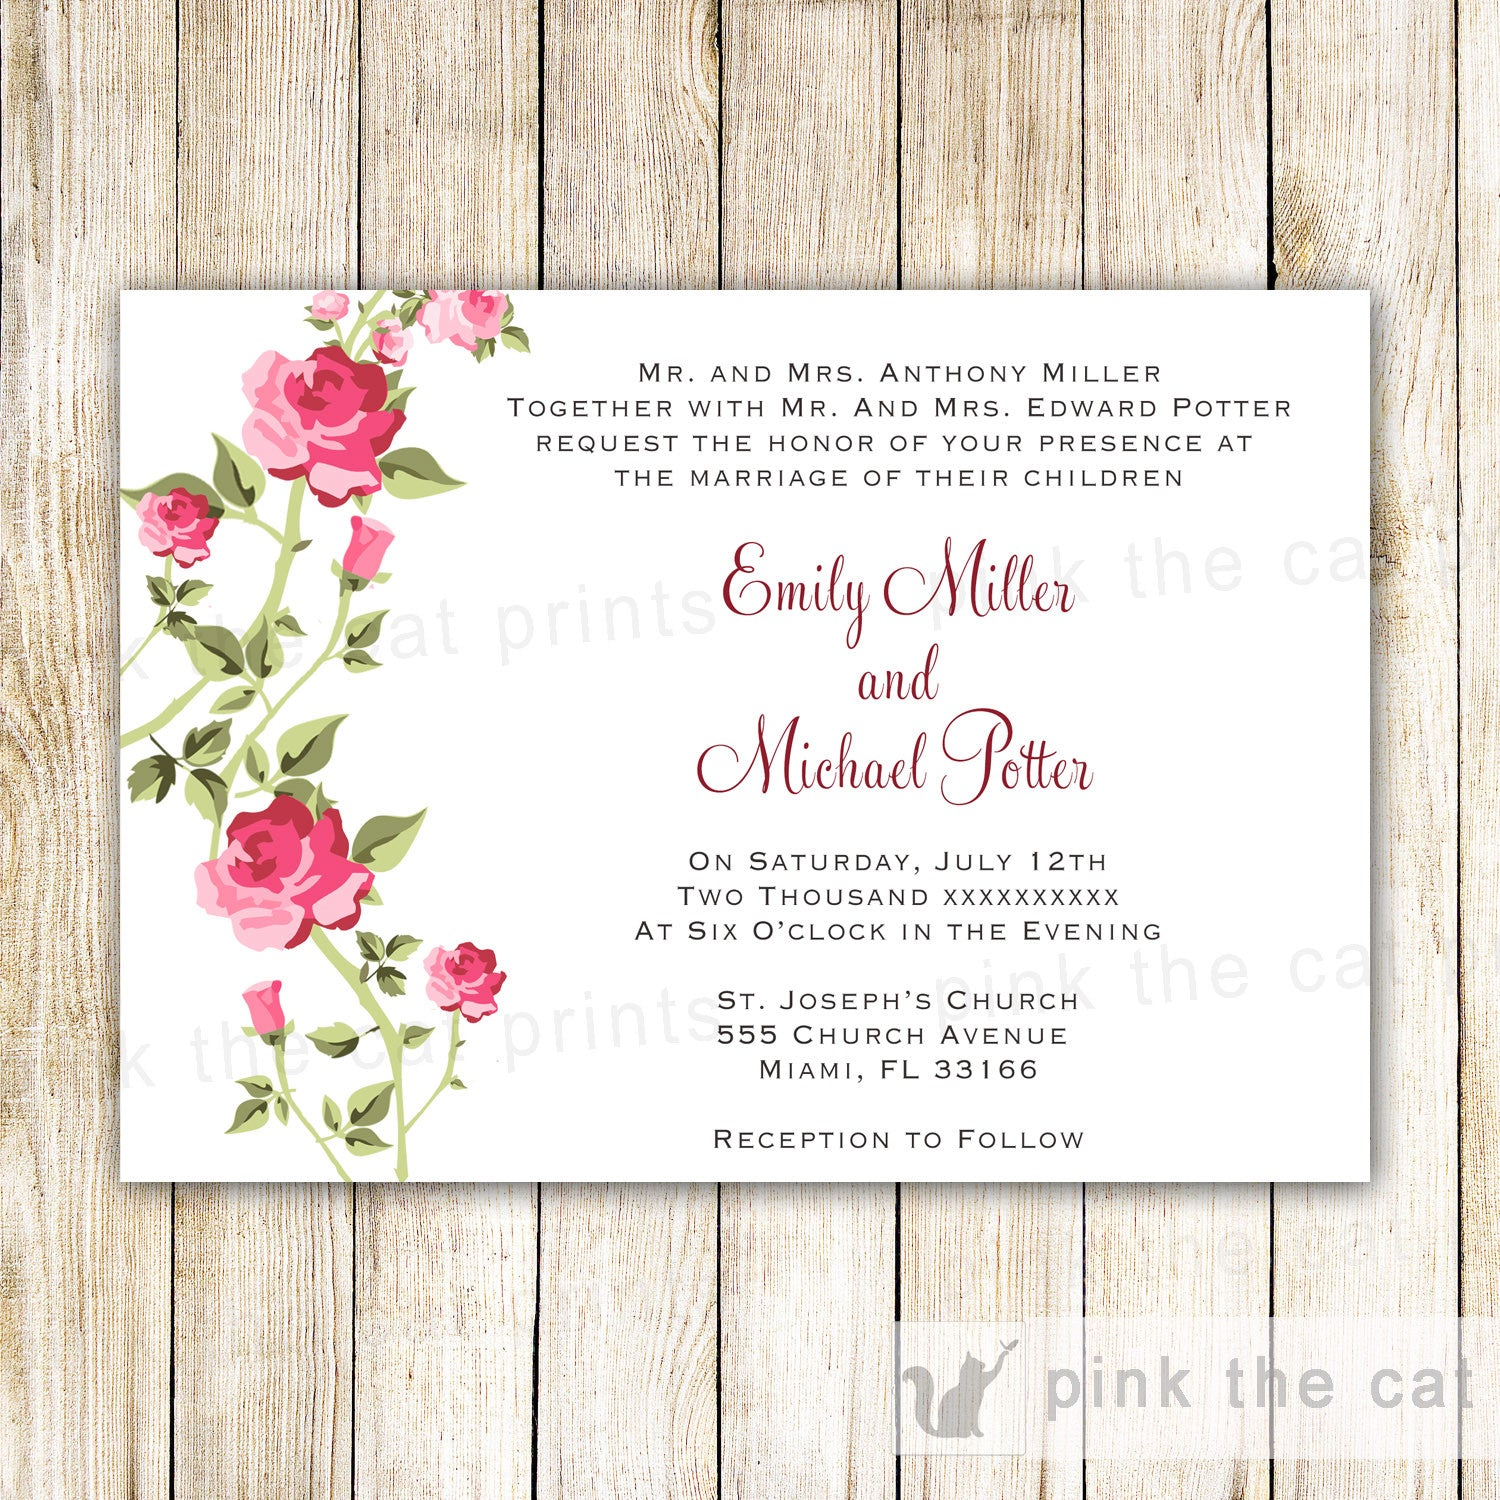 Wedding Invitation & RSVP Card Roses Pink Mint Green – Pink The Cat